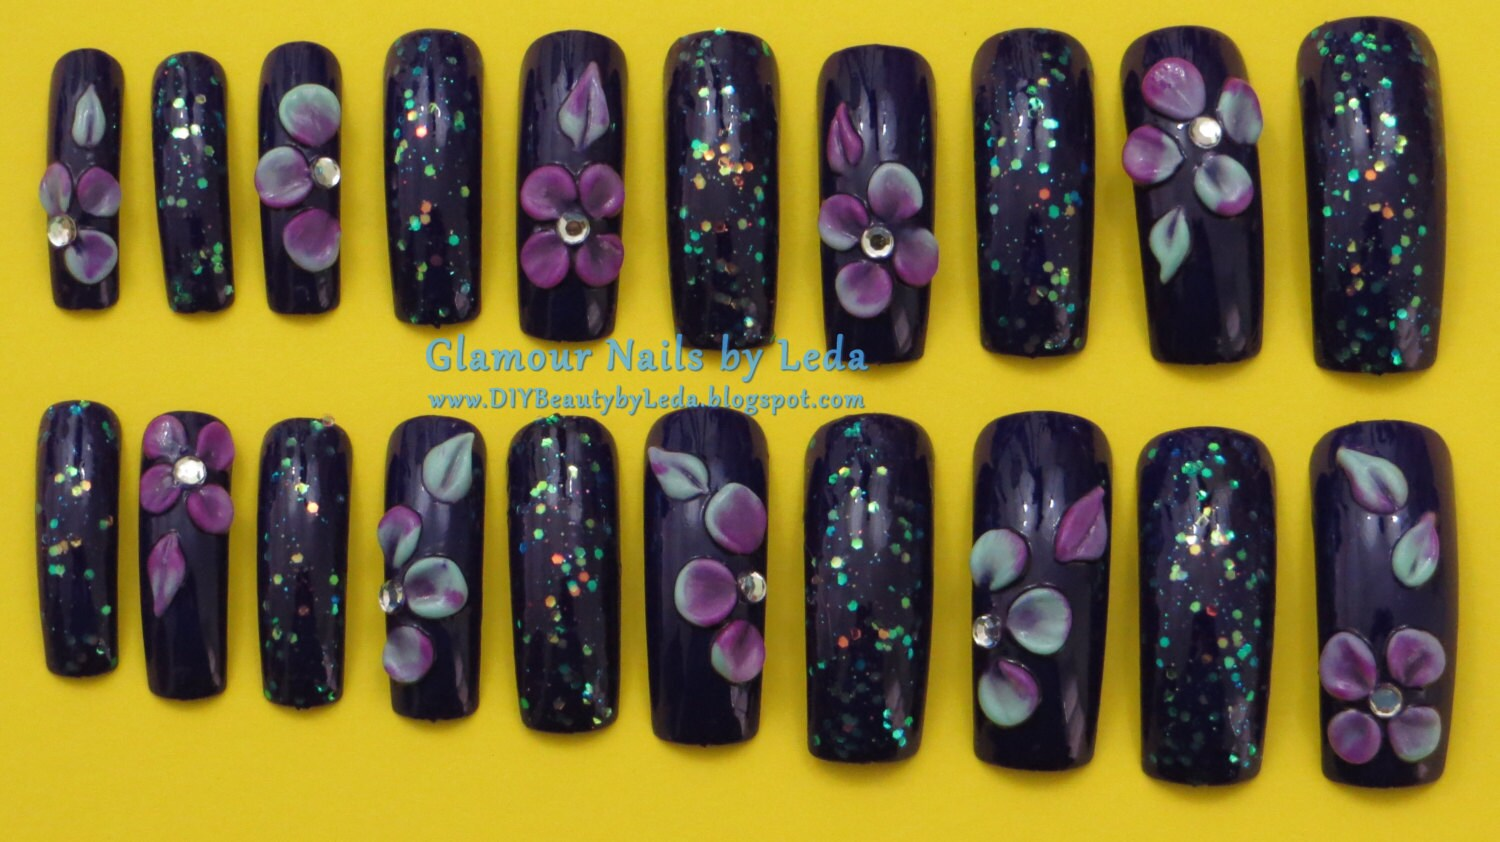 20 Full Well Extra Long Square Nails Sweet Plum 3D nail art acrylic ...